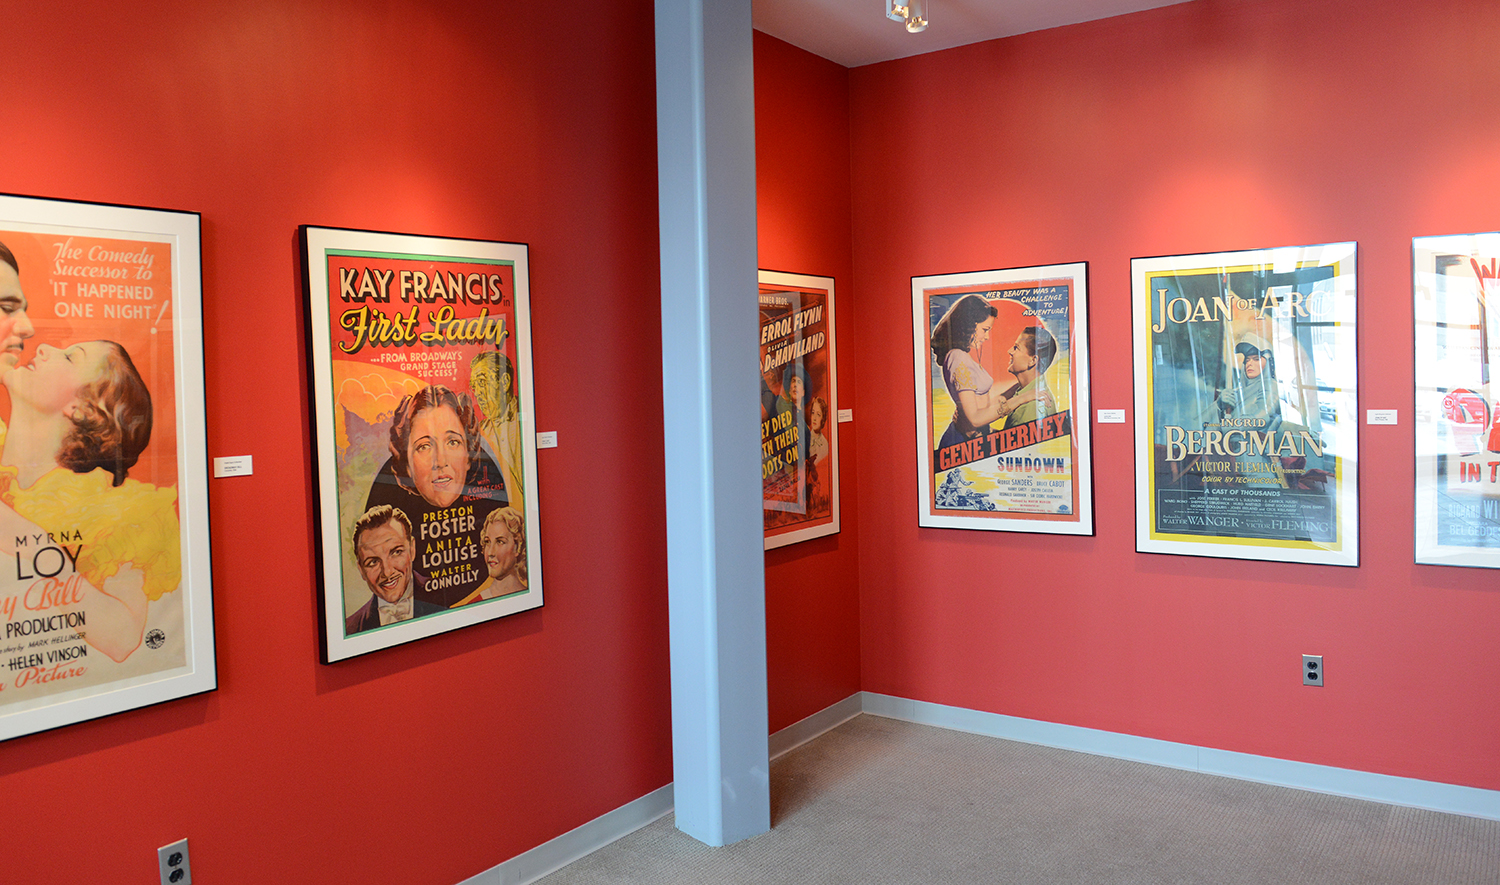 Wesleyans Cinema Archives Is Hosting The Exhibit Posters From Collection In Rick